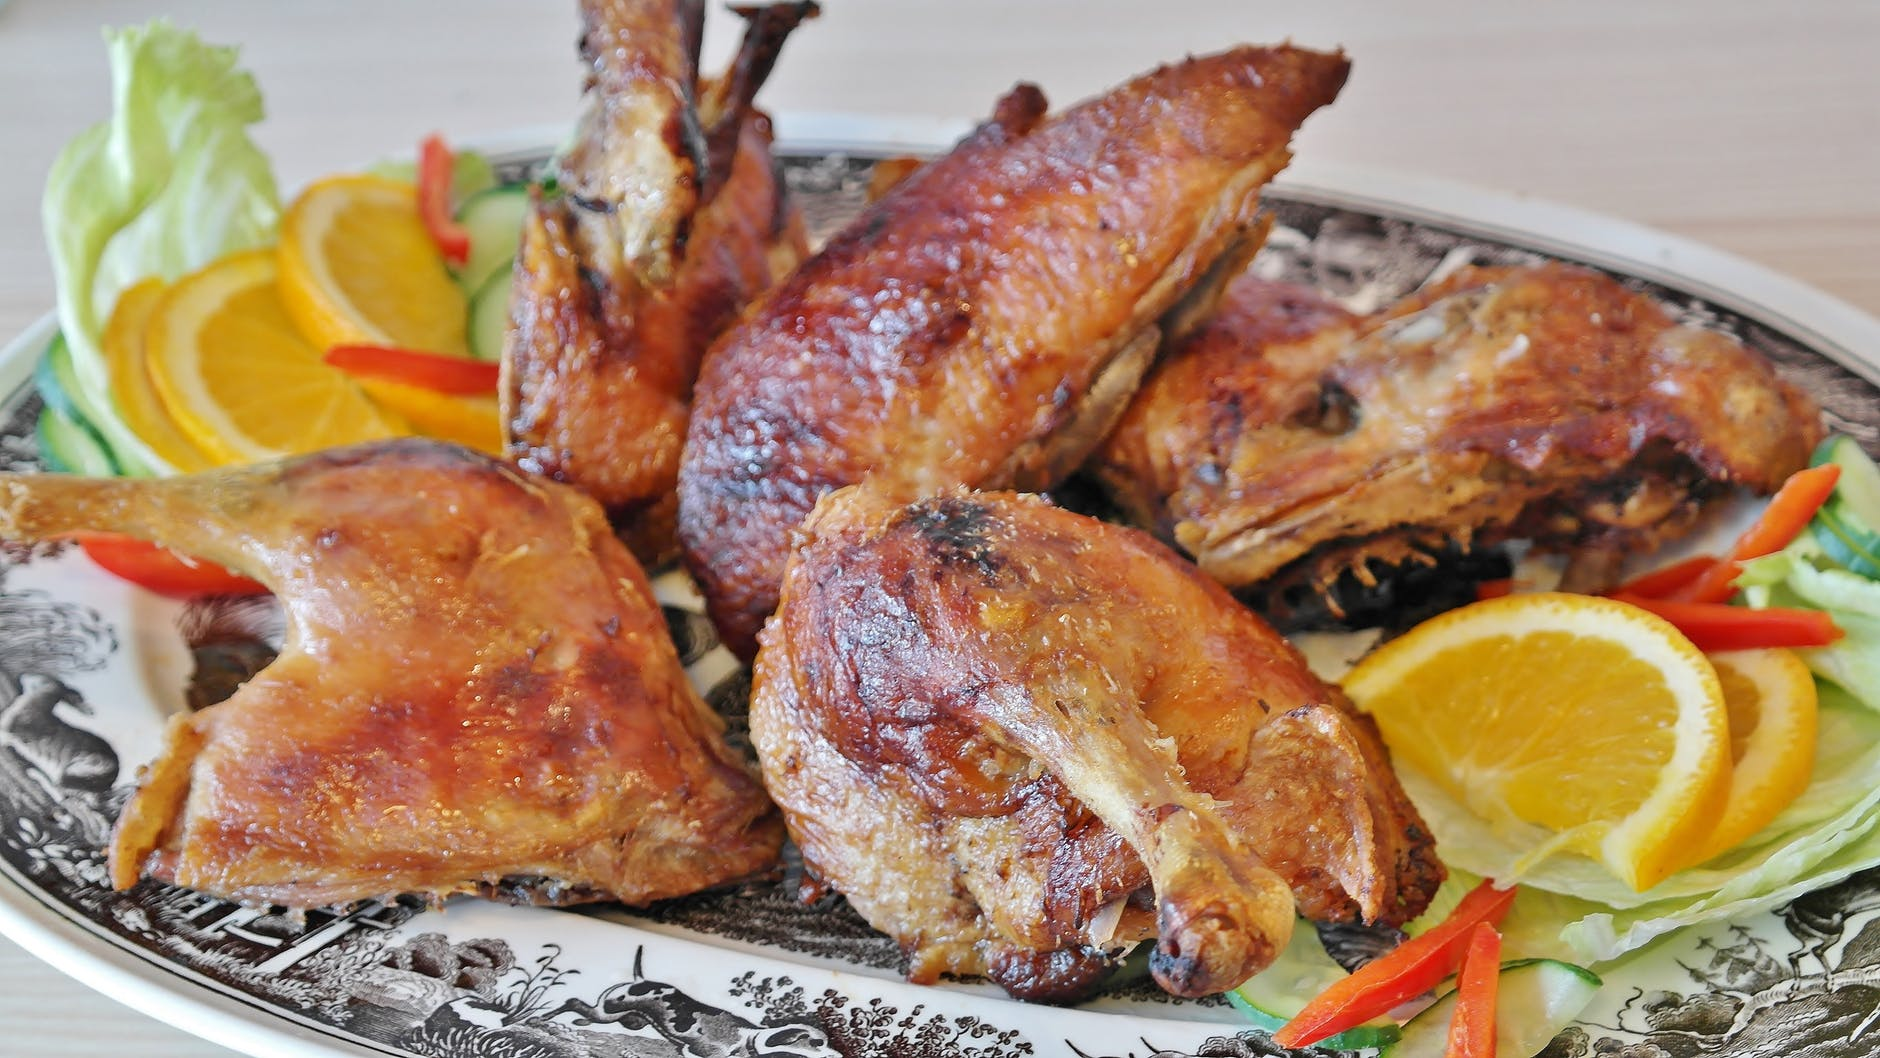 Bake Juicy Chicken With Exclusive Kitchen Sets